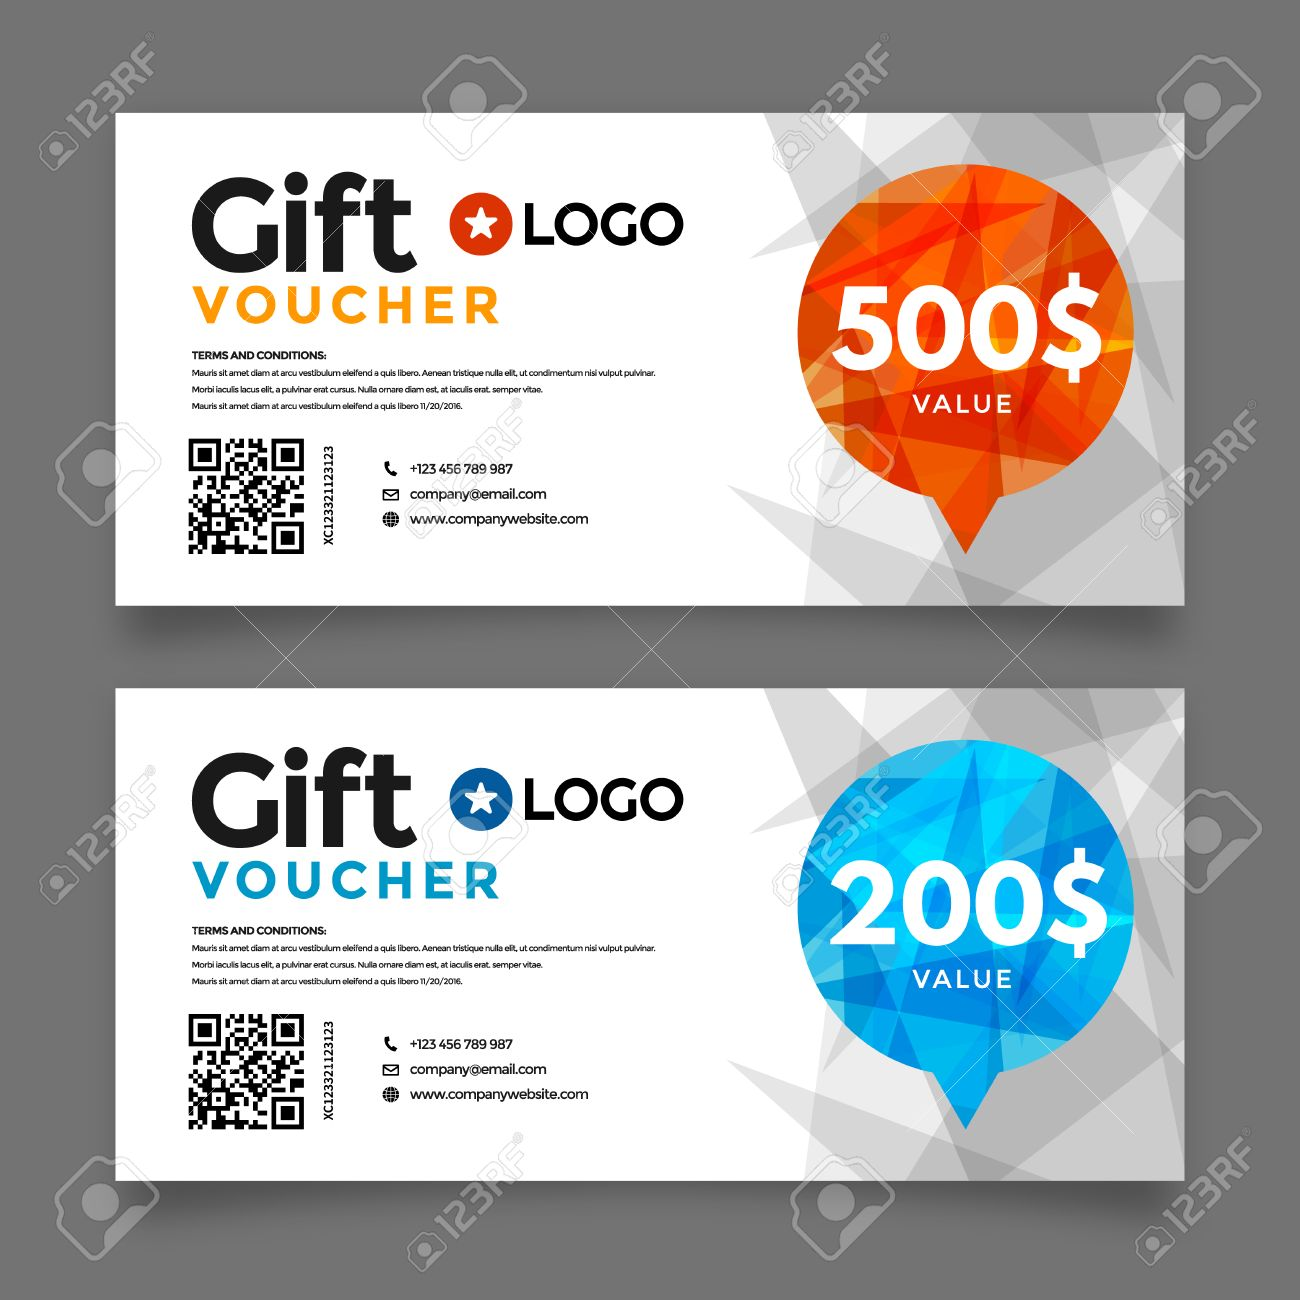 gift voucher template premium certificate coupon vector graphic gift voucher template premium certificate coupon vector graphic design stock vector 48360370